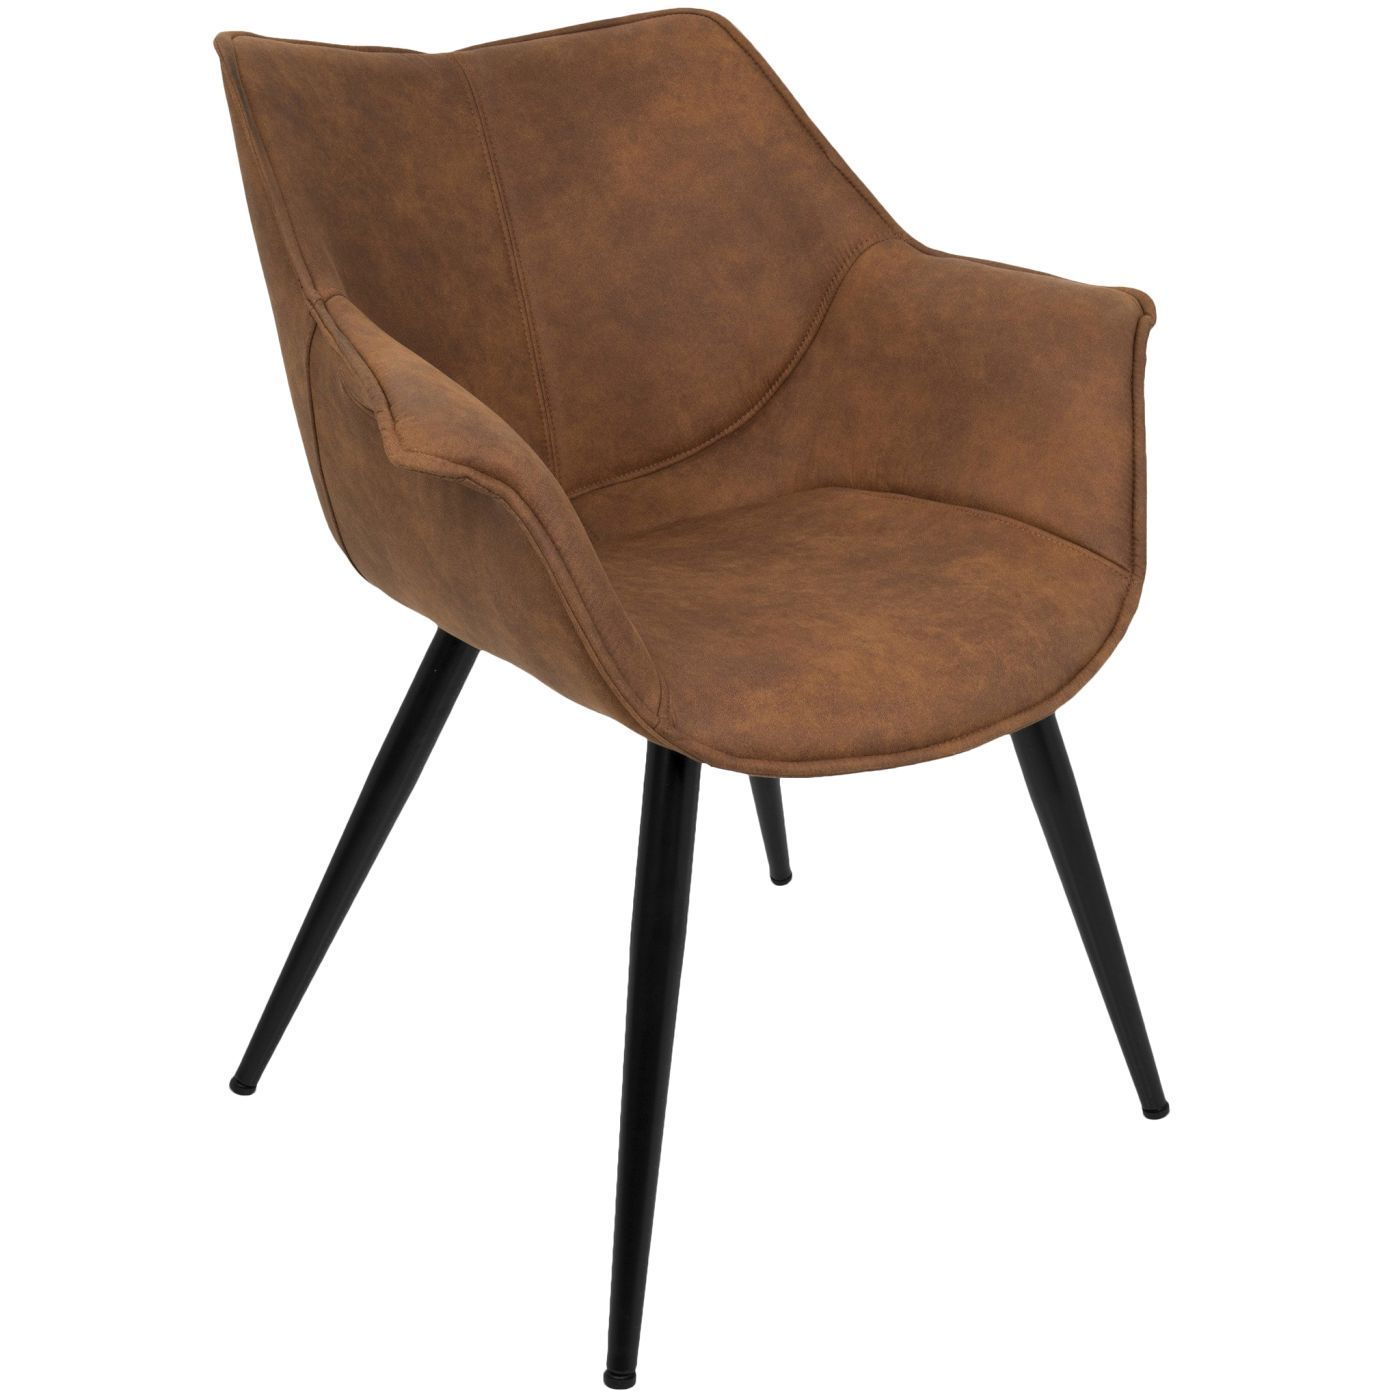 Lumisource Wrangler Rust Accent Chair Set Of 2 Ch Wrng: Buy Lumisource CH-WRNG RU2 Wrangler Chair Rust (set Of 2